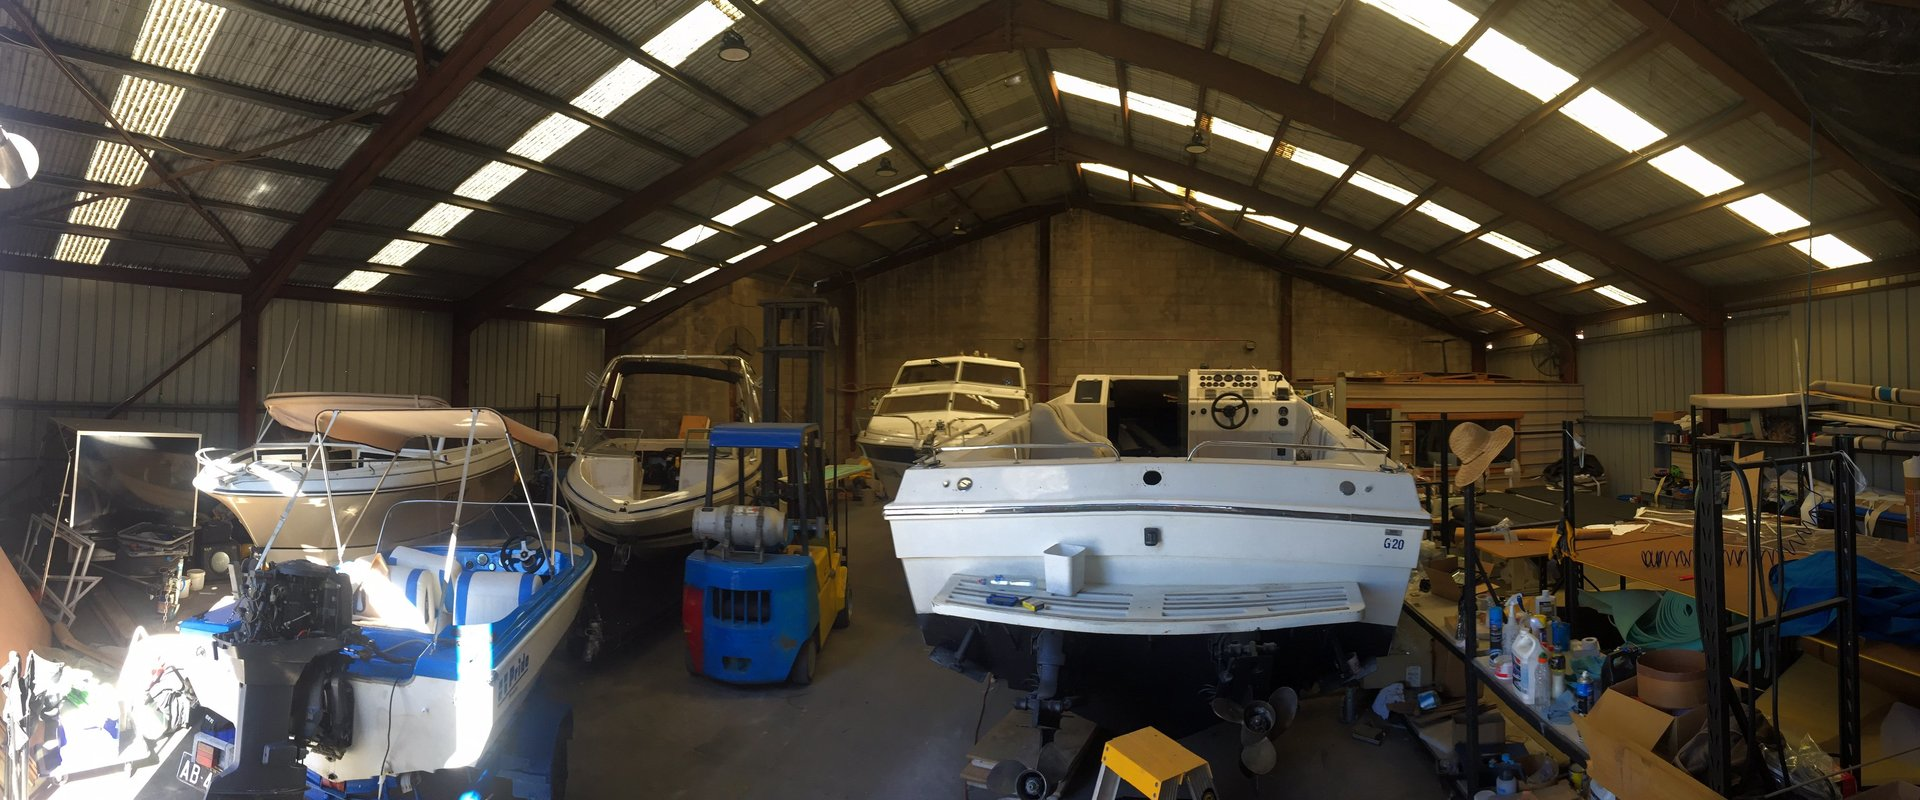 Boat Repairs and refits Sydney